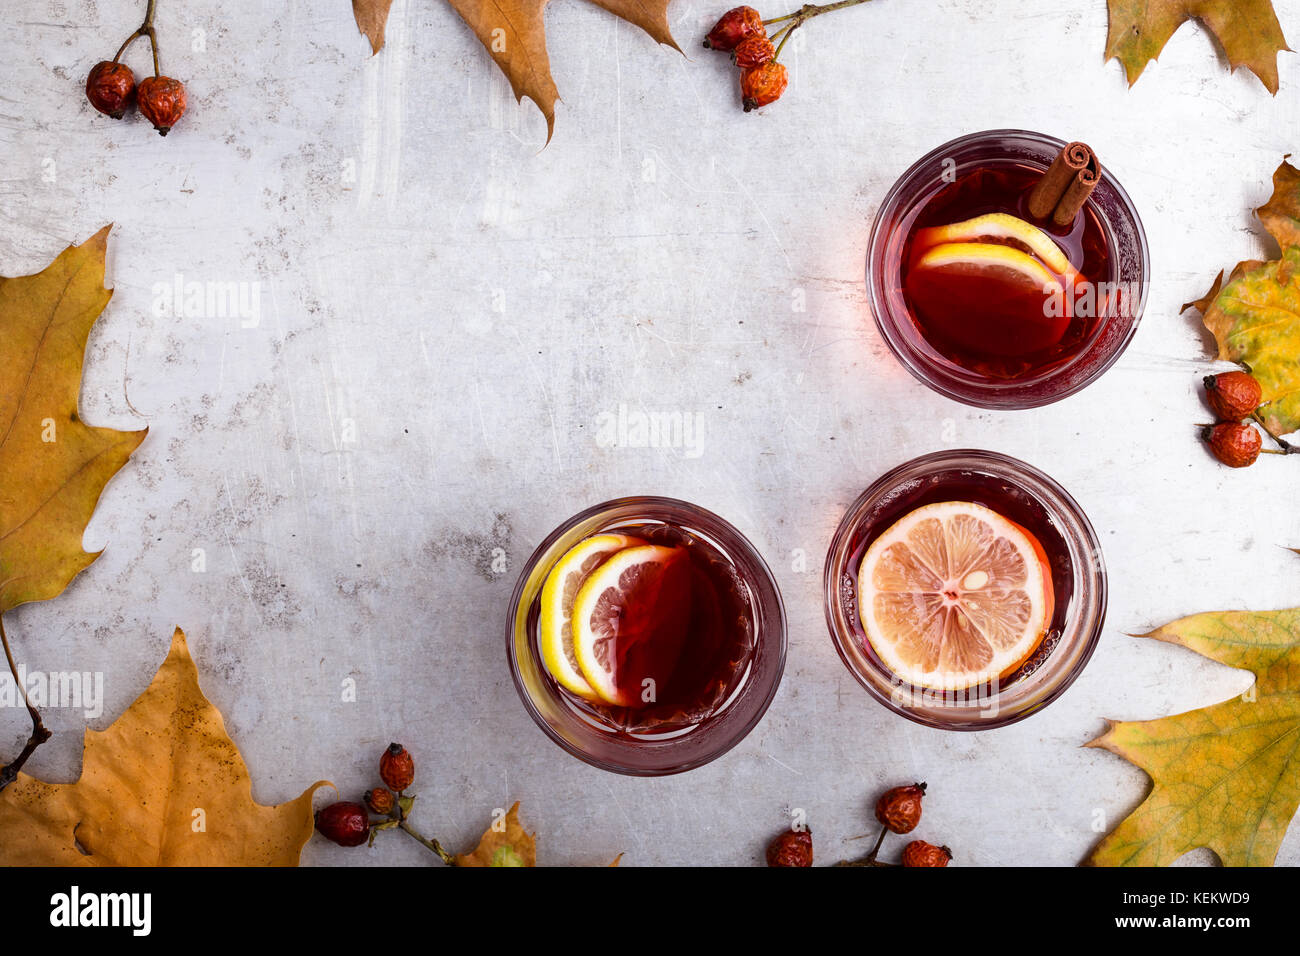 Hot red tea with lemon on light gray table with copy space viewed from above, delicious autumn mulled wine drink - Stock Image